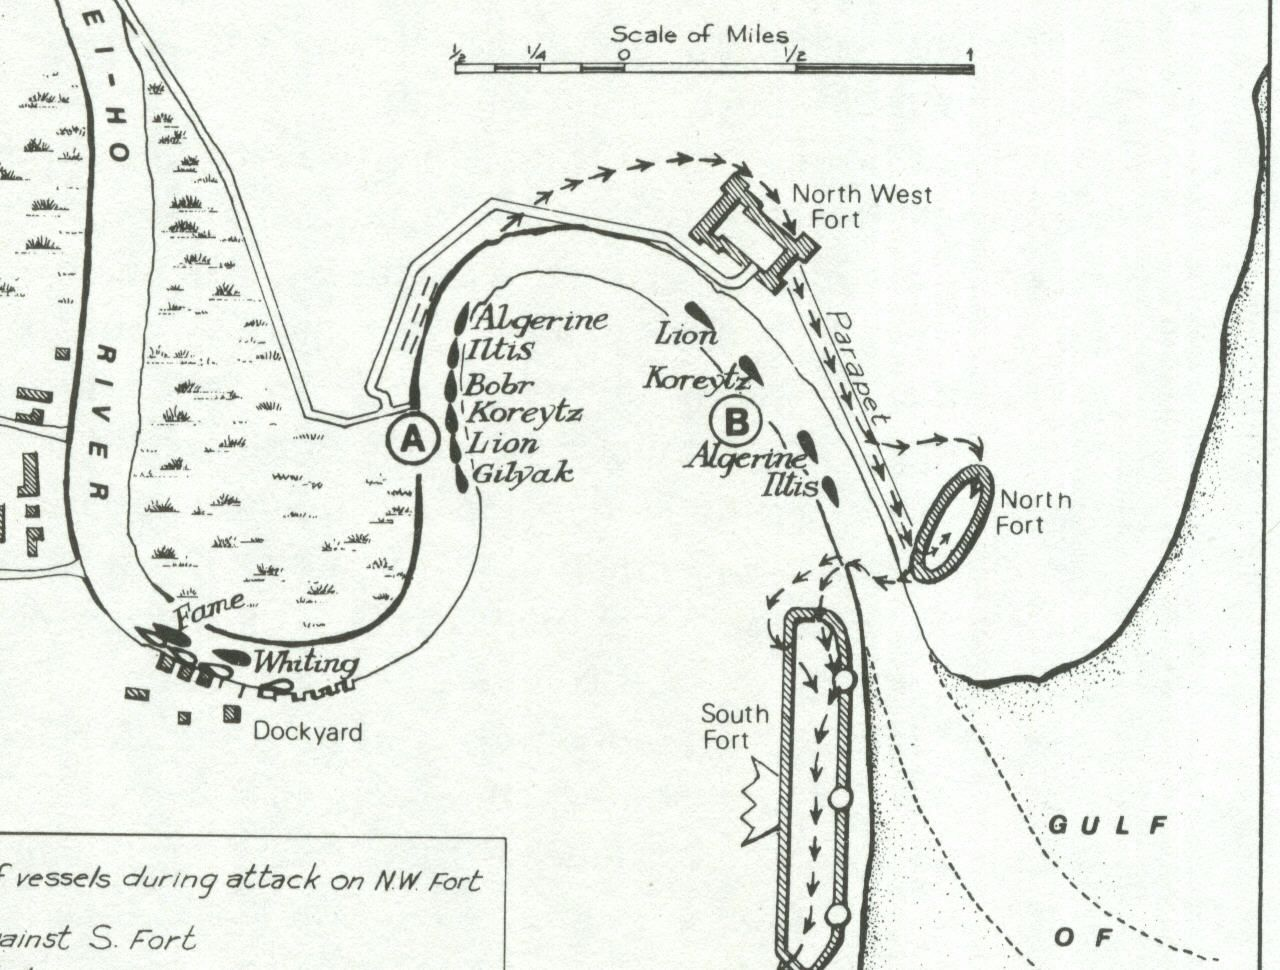 Map showing the locations of the Dagu fortifications defended by the Chinese forces (imperial forces and Boxers) at the Northwest Fort, North Fort and South Fort.  Map also shows the locations of 12 ships attempting to eliminate these forts, enabling the troops to provide relief to the Beijing legations.